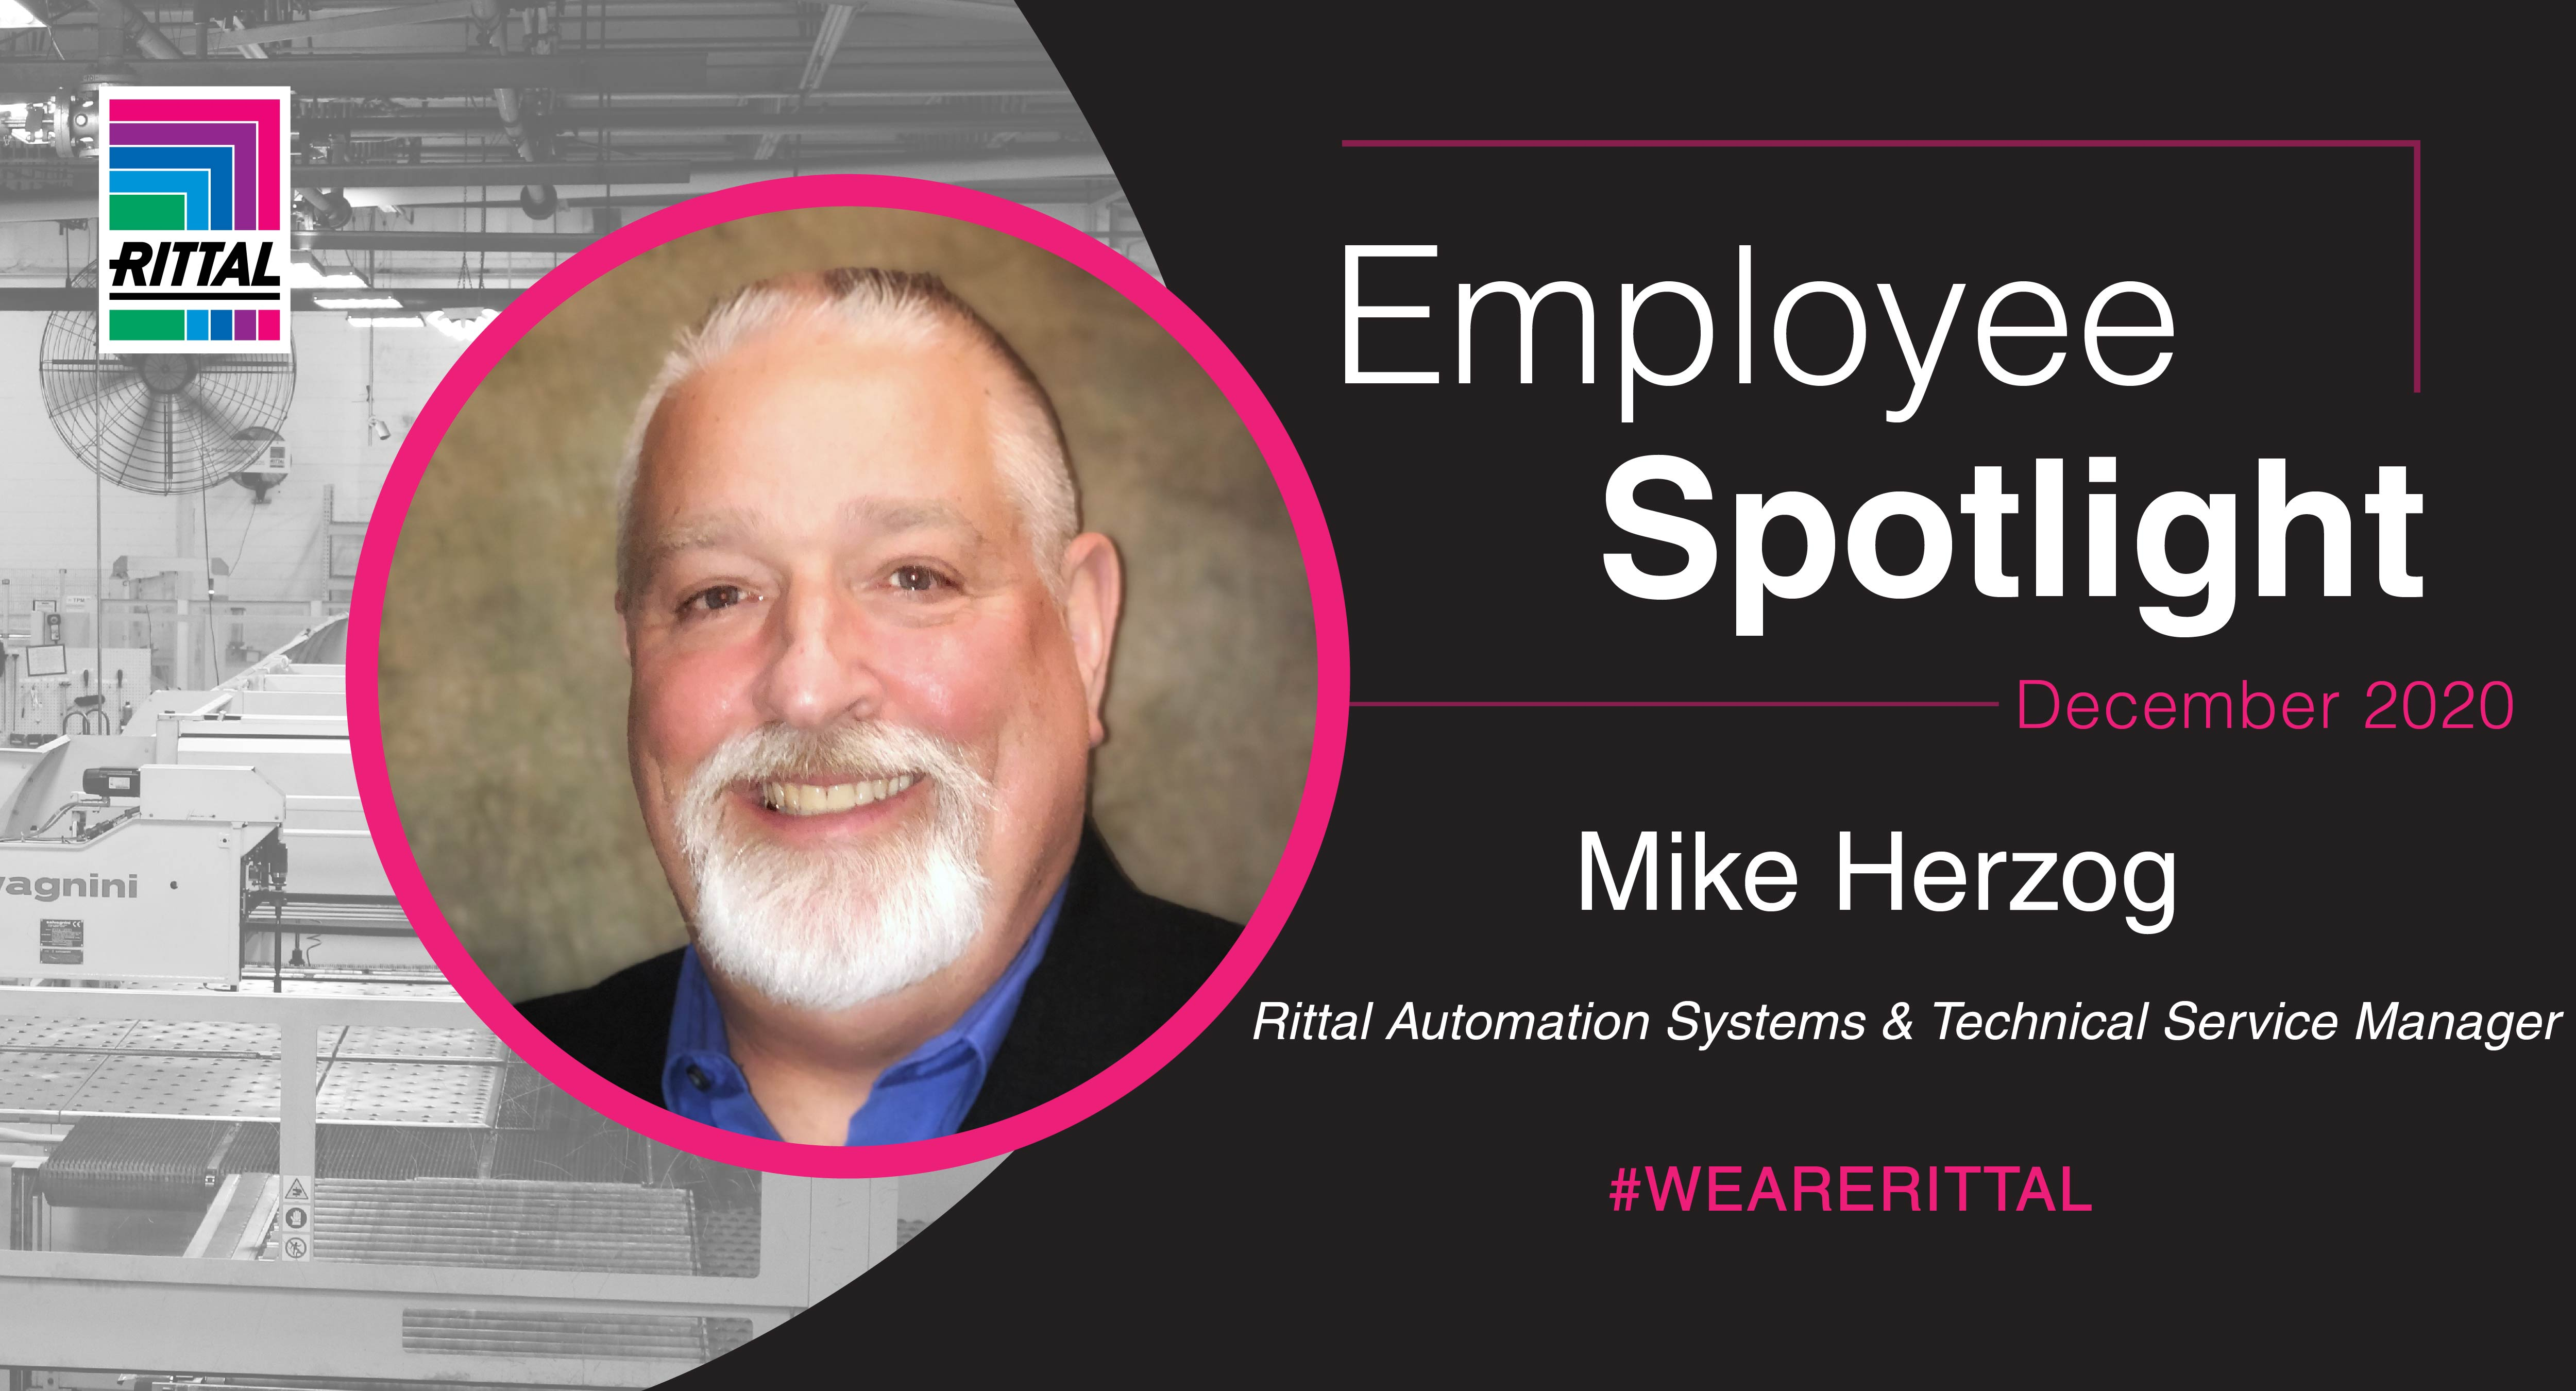 We are Rittal! with Mike Herzog, Product Manager - Rittal Automation Systems